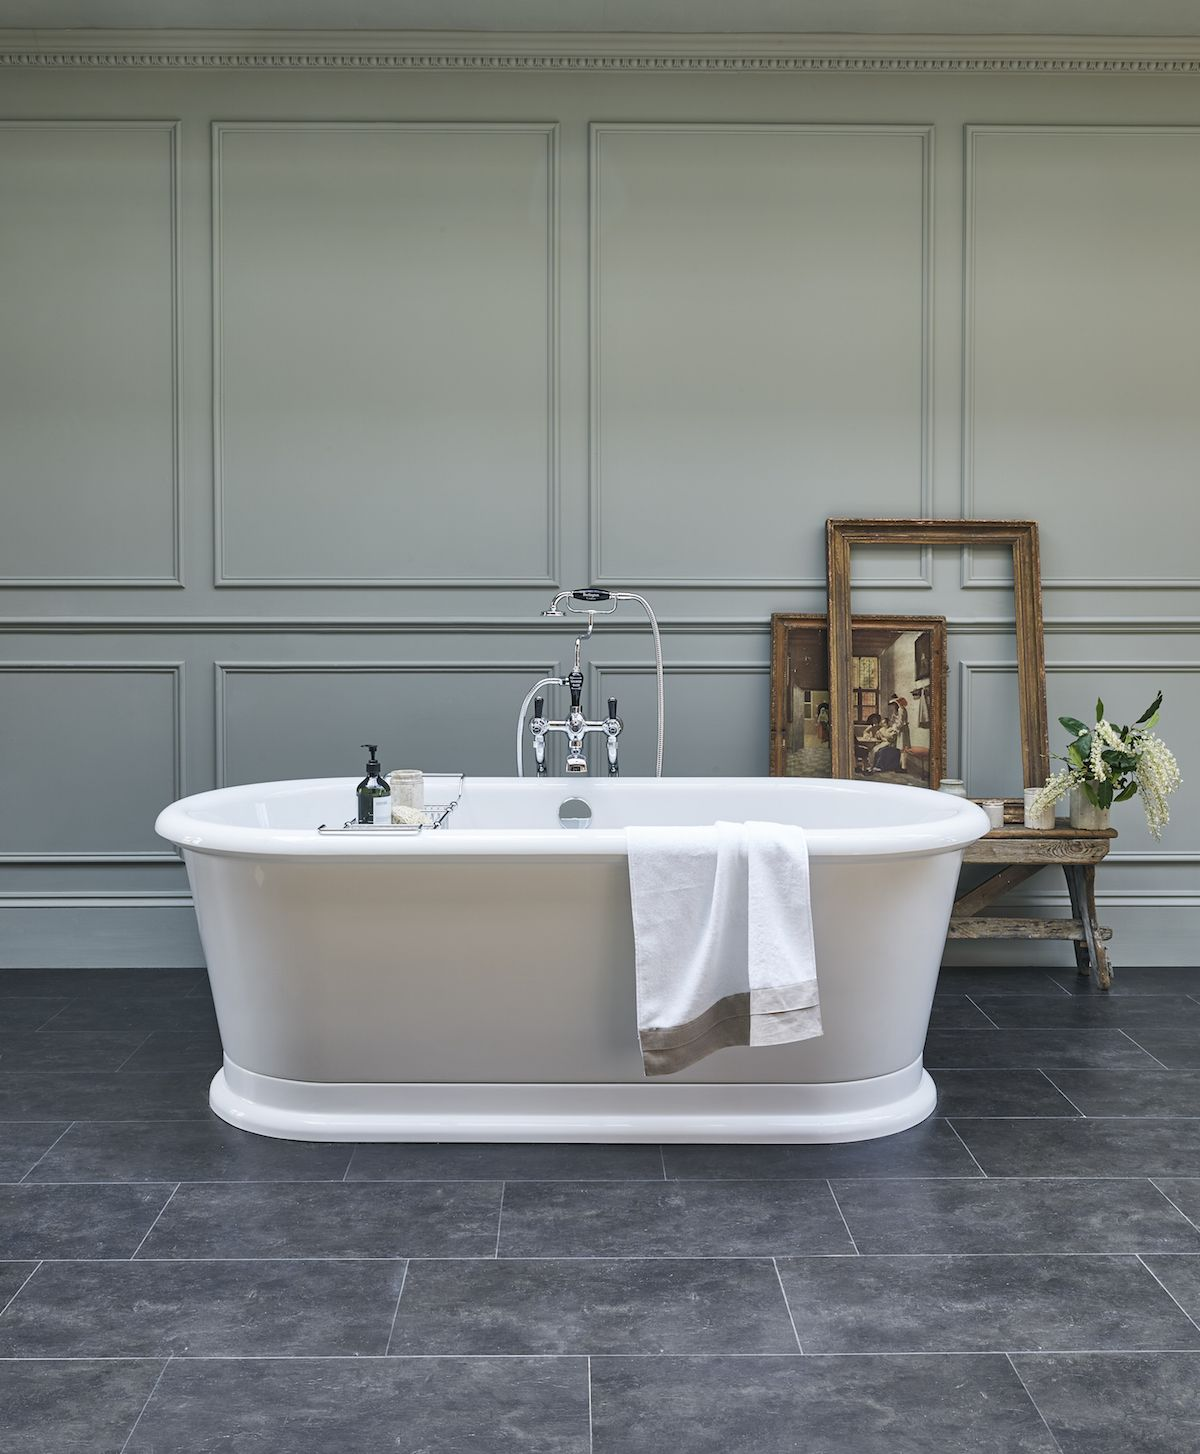 Sink Into Our London Round Soaking Tub For The Ultimate Relaxation